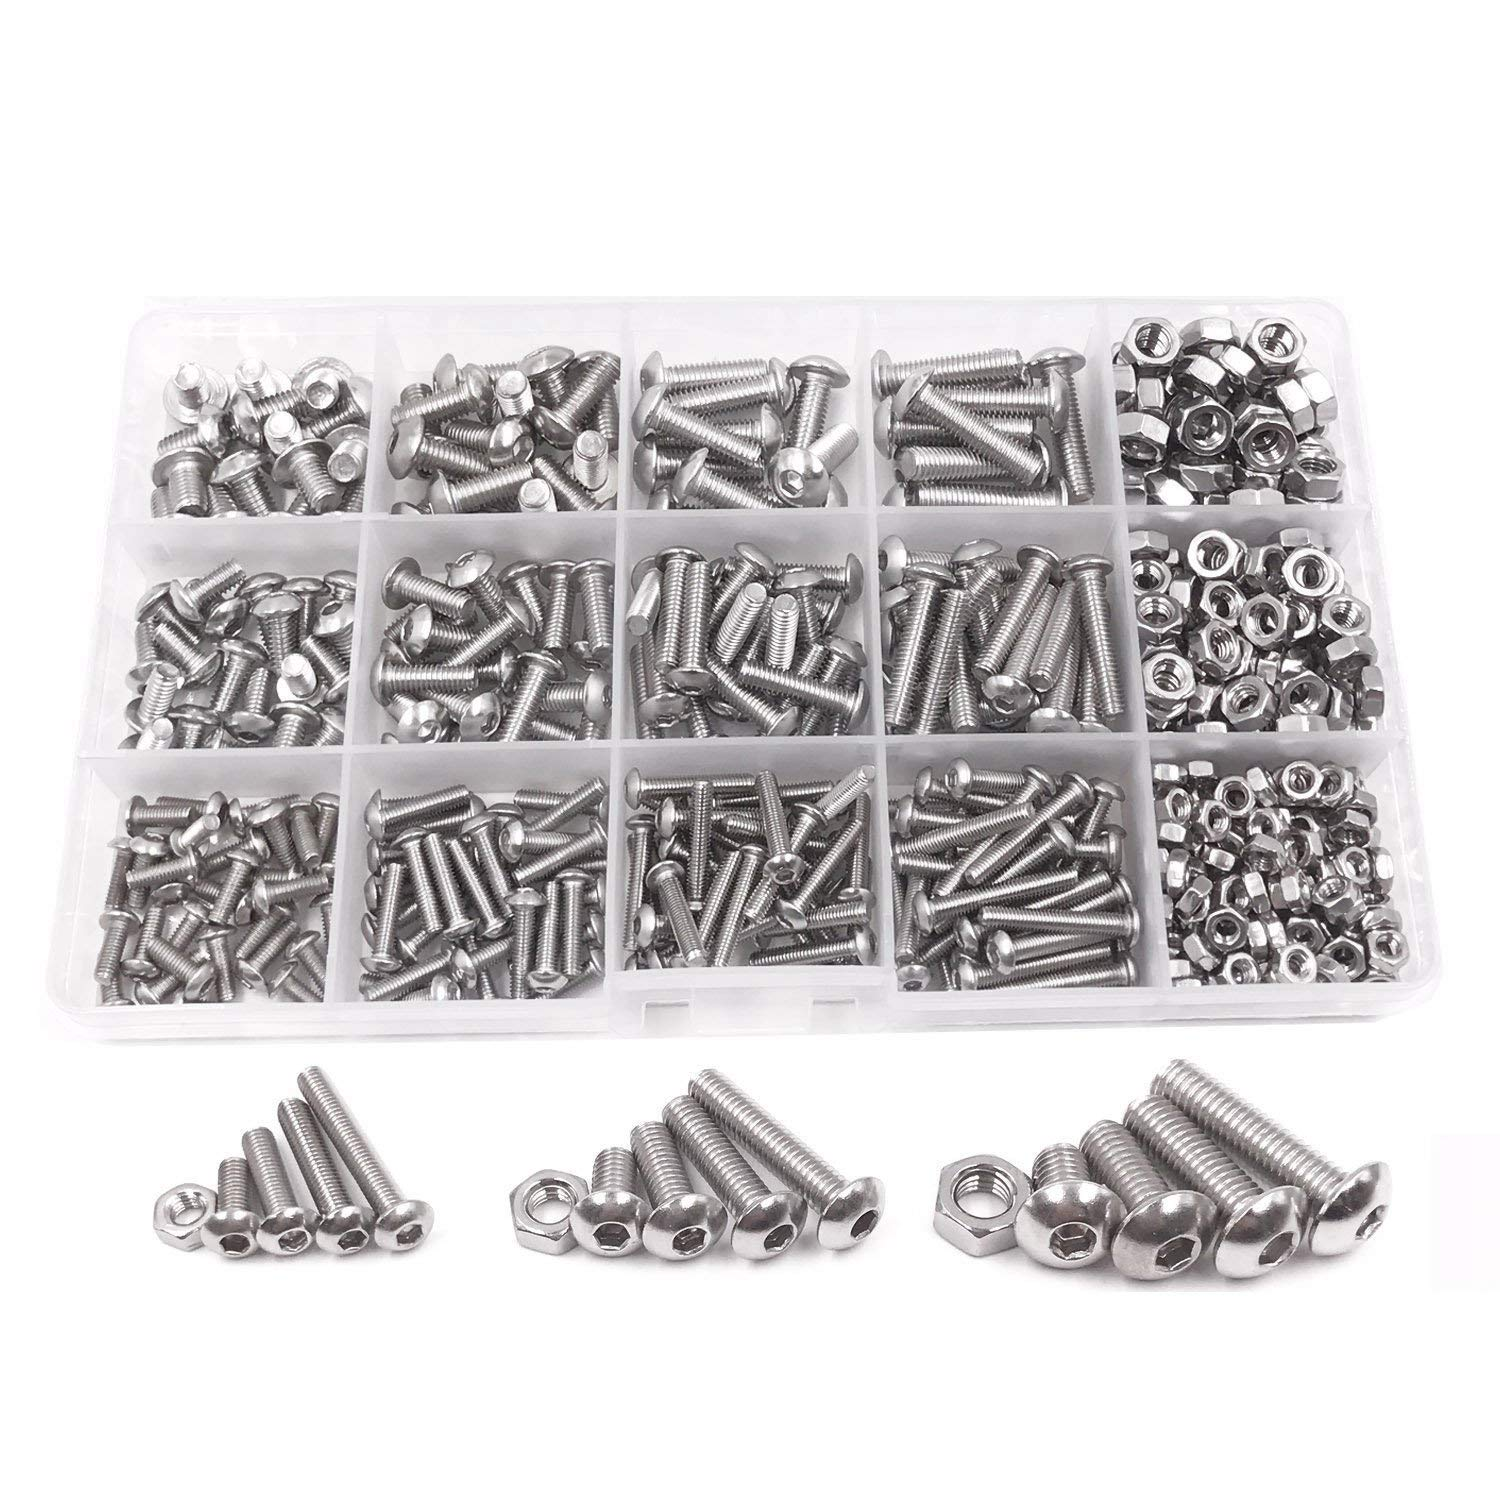 TOOGOO 500pcs M3 M4 M5 A2 Stainless Steel ISO7380 Button Head Hex Bolts Hexagon Socket Screws With Nuts Assortment Kit